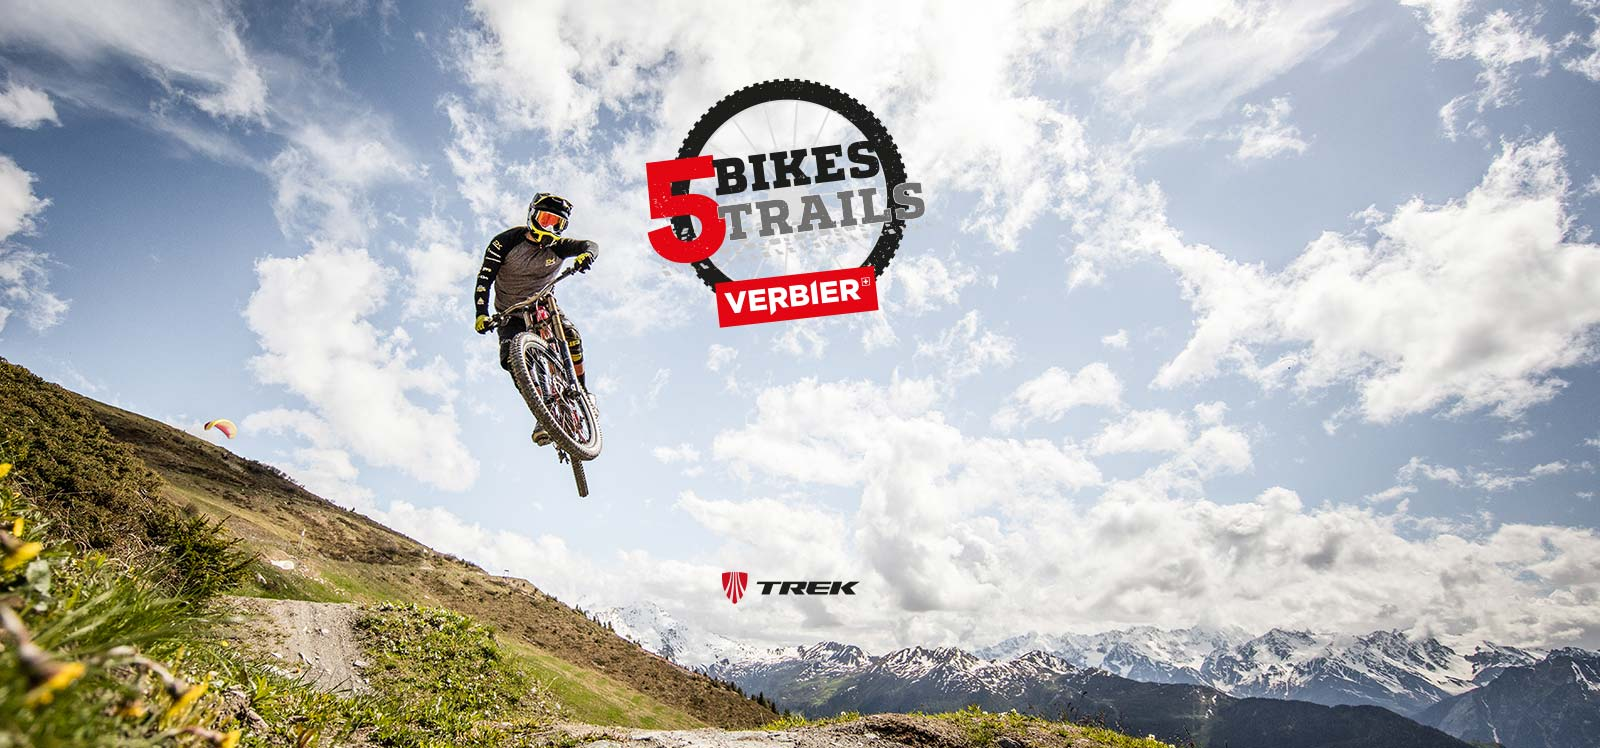 5 bikes for 5 trails